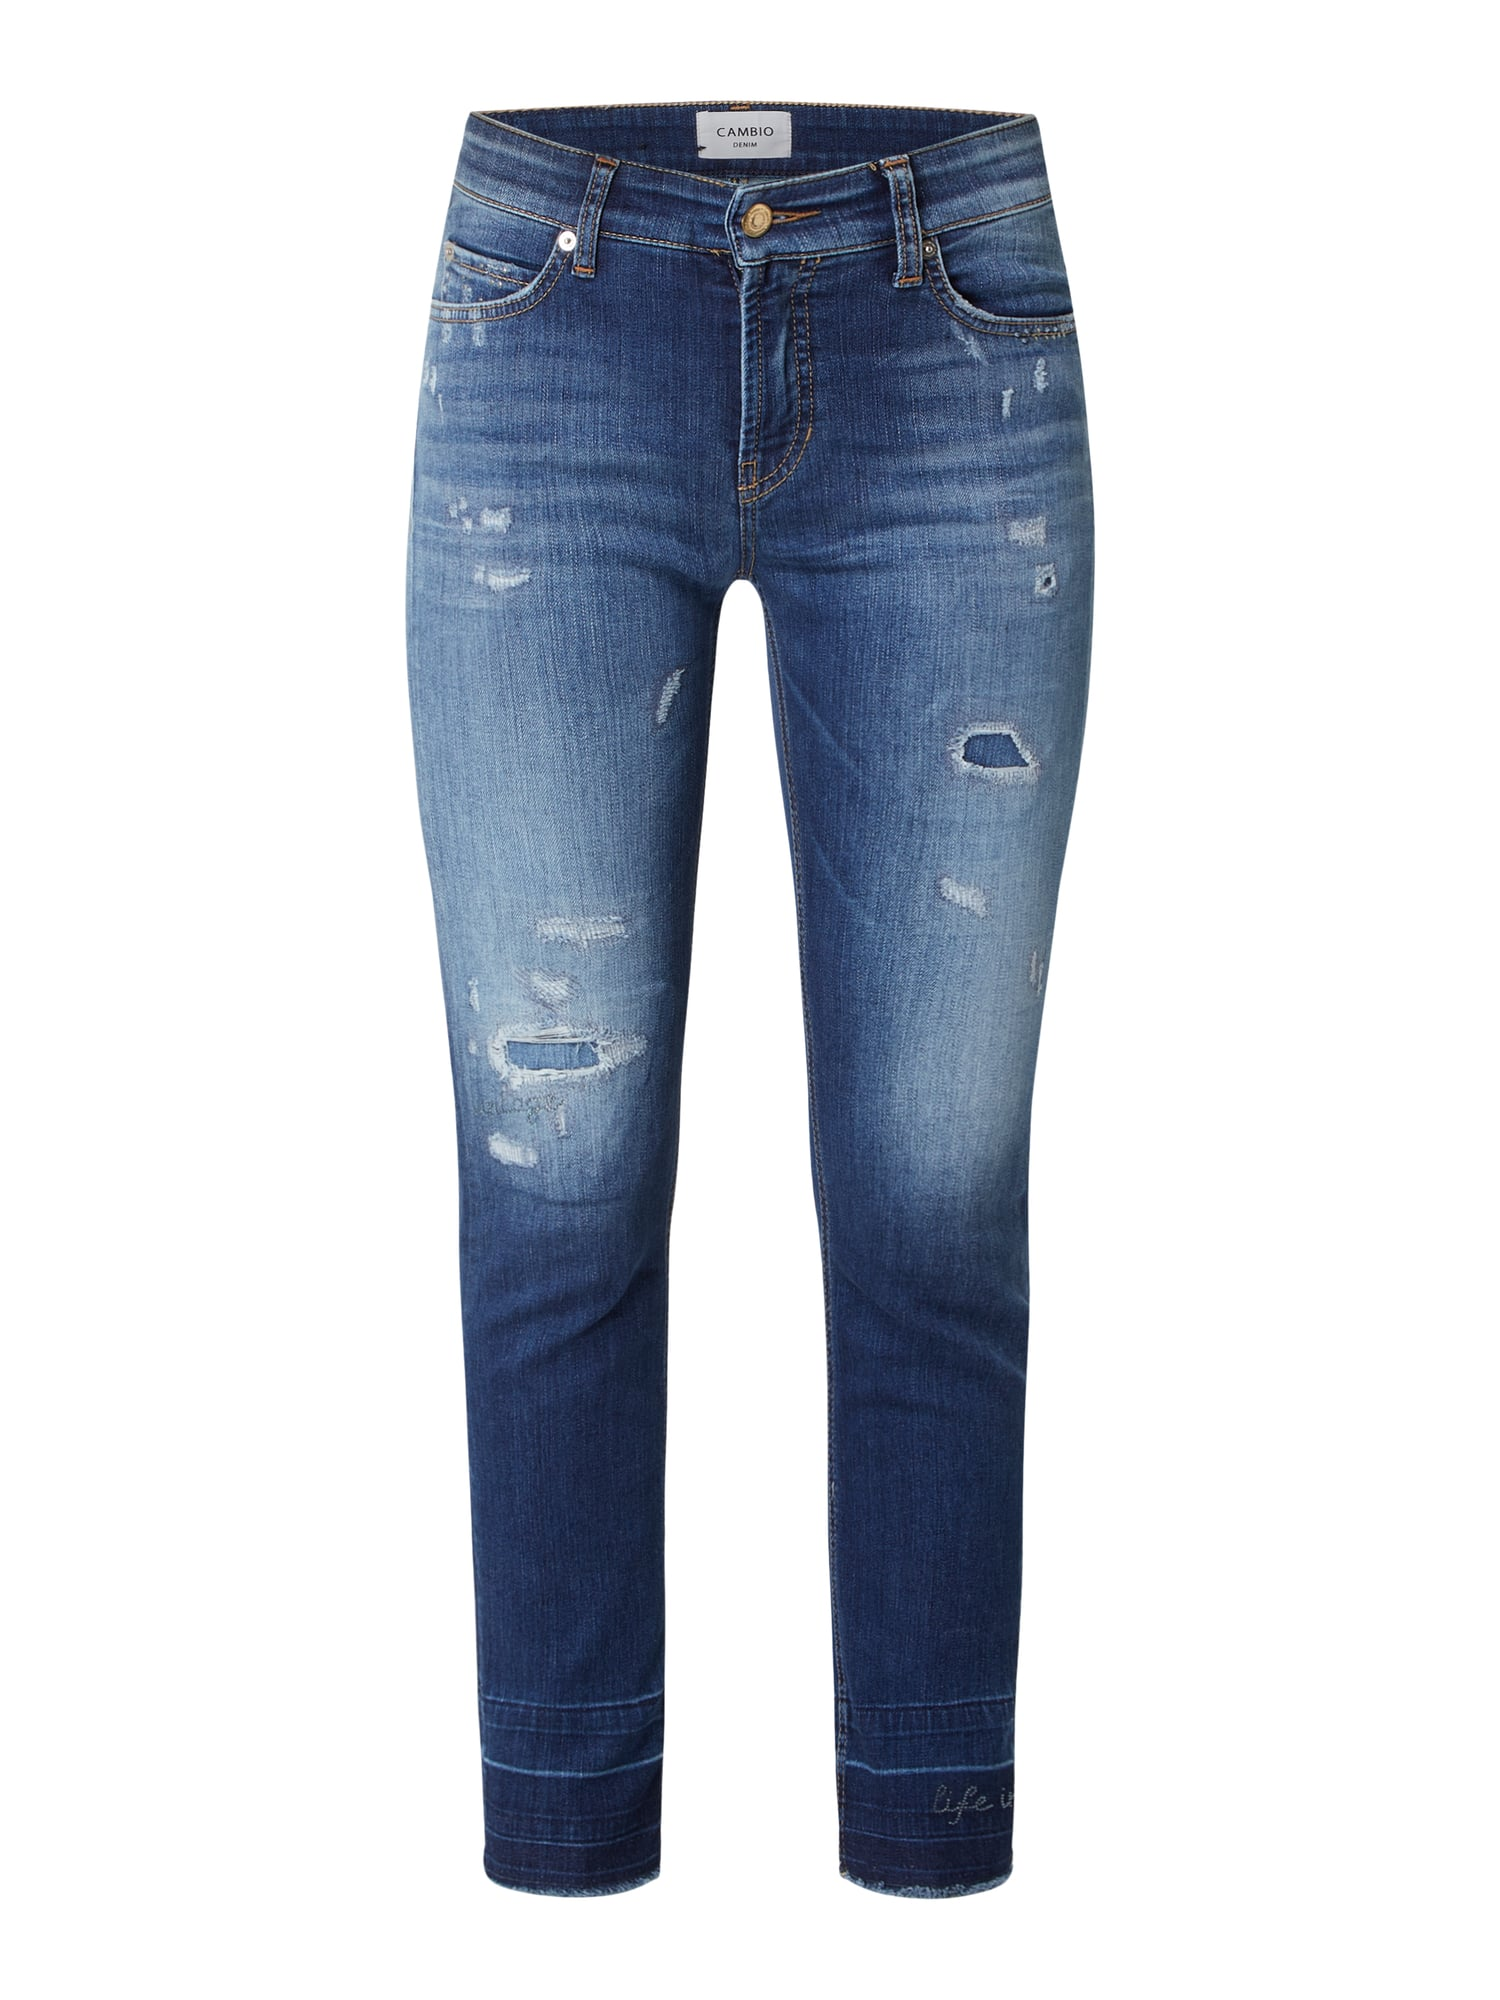 CAMBIO Ankle Cut Jeans mit Stretch-Anteil Modell 'Paris ...